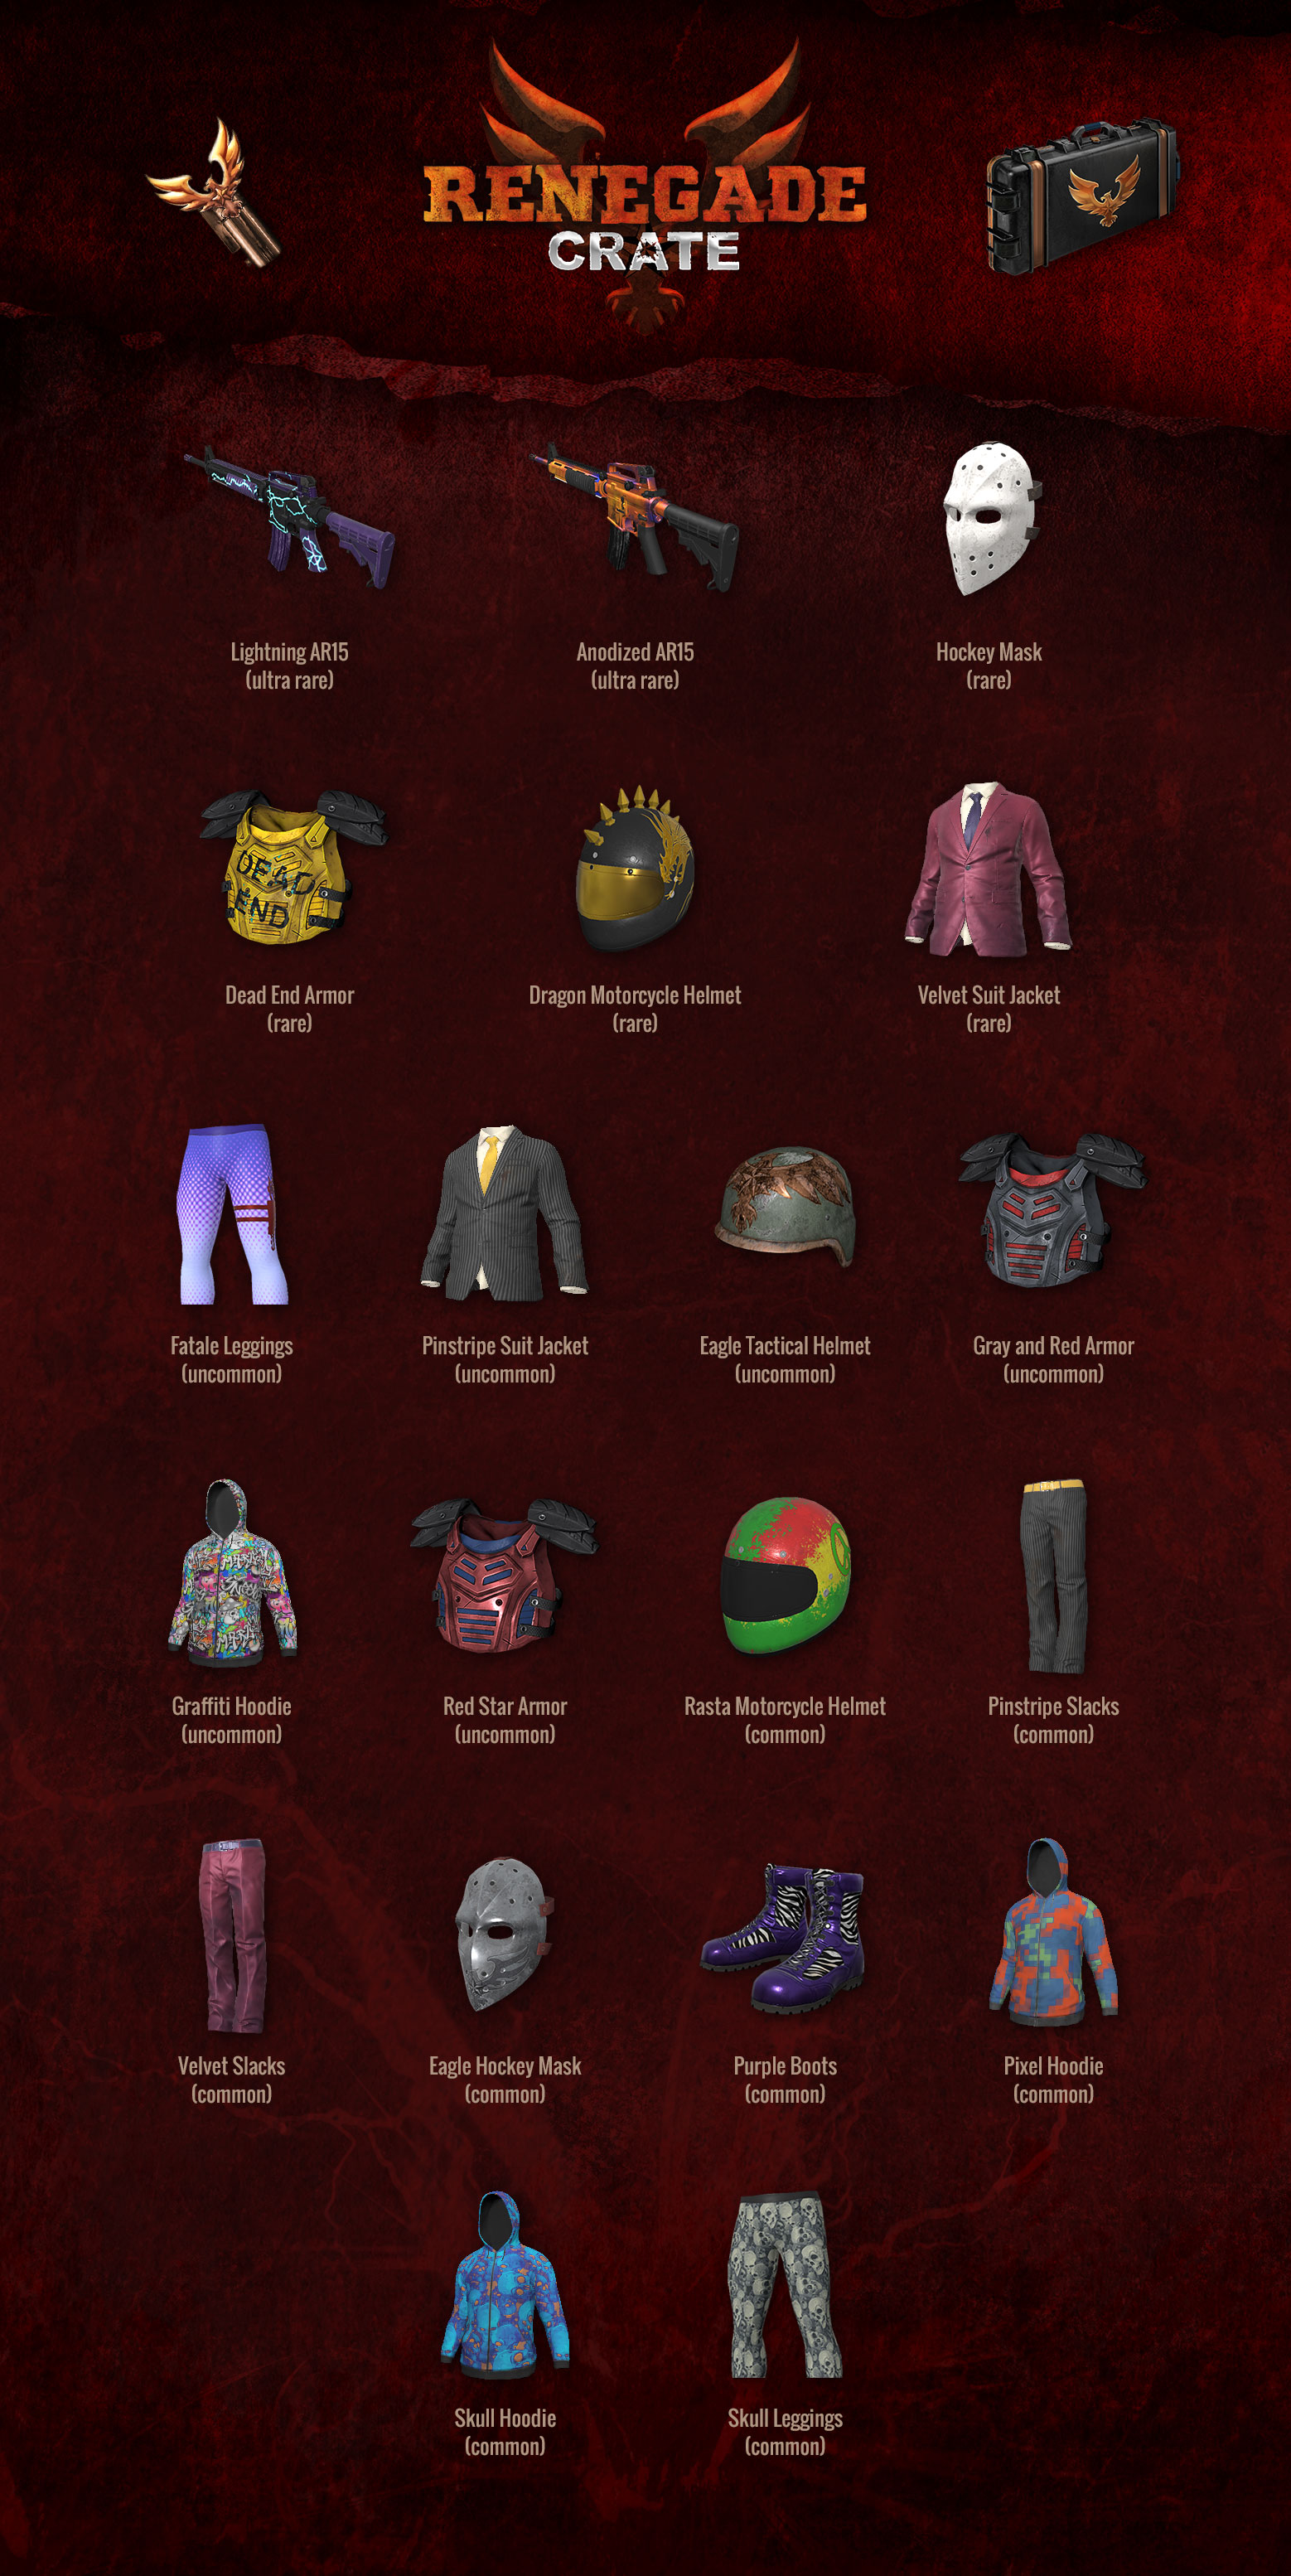 081?v=1.0 renegade crate king of the kill massively multiplayer arena,Invitational H1z1 Crate